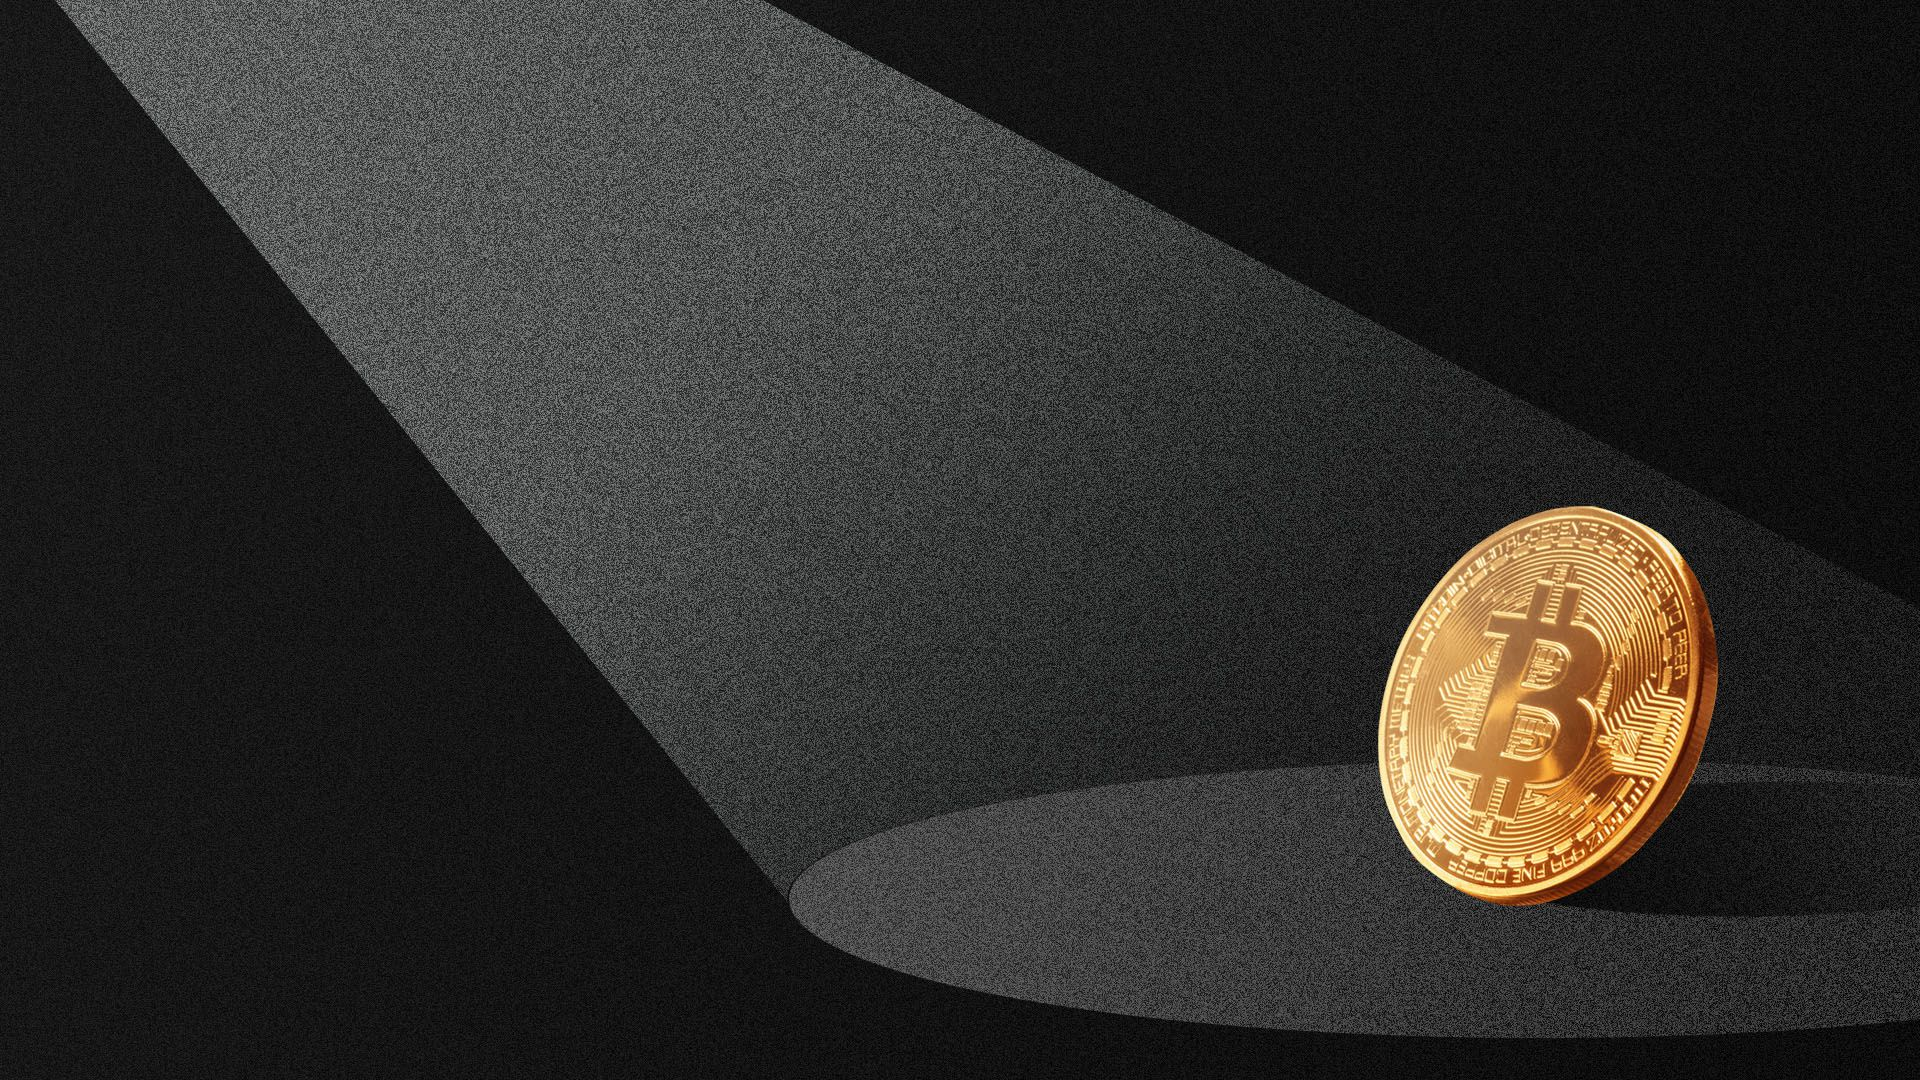 Illustration of a light shining on a bitcoin in the dark.